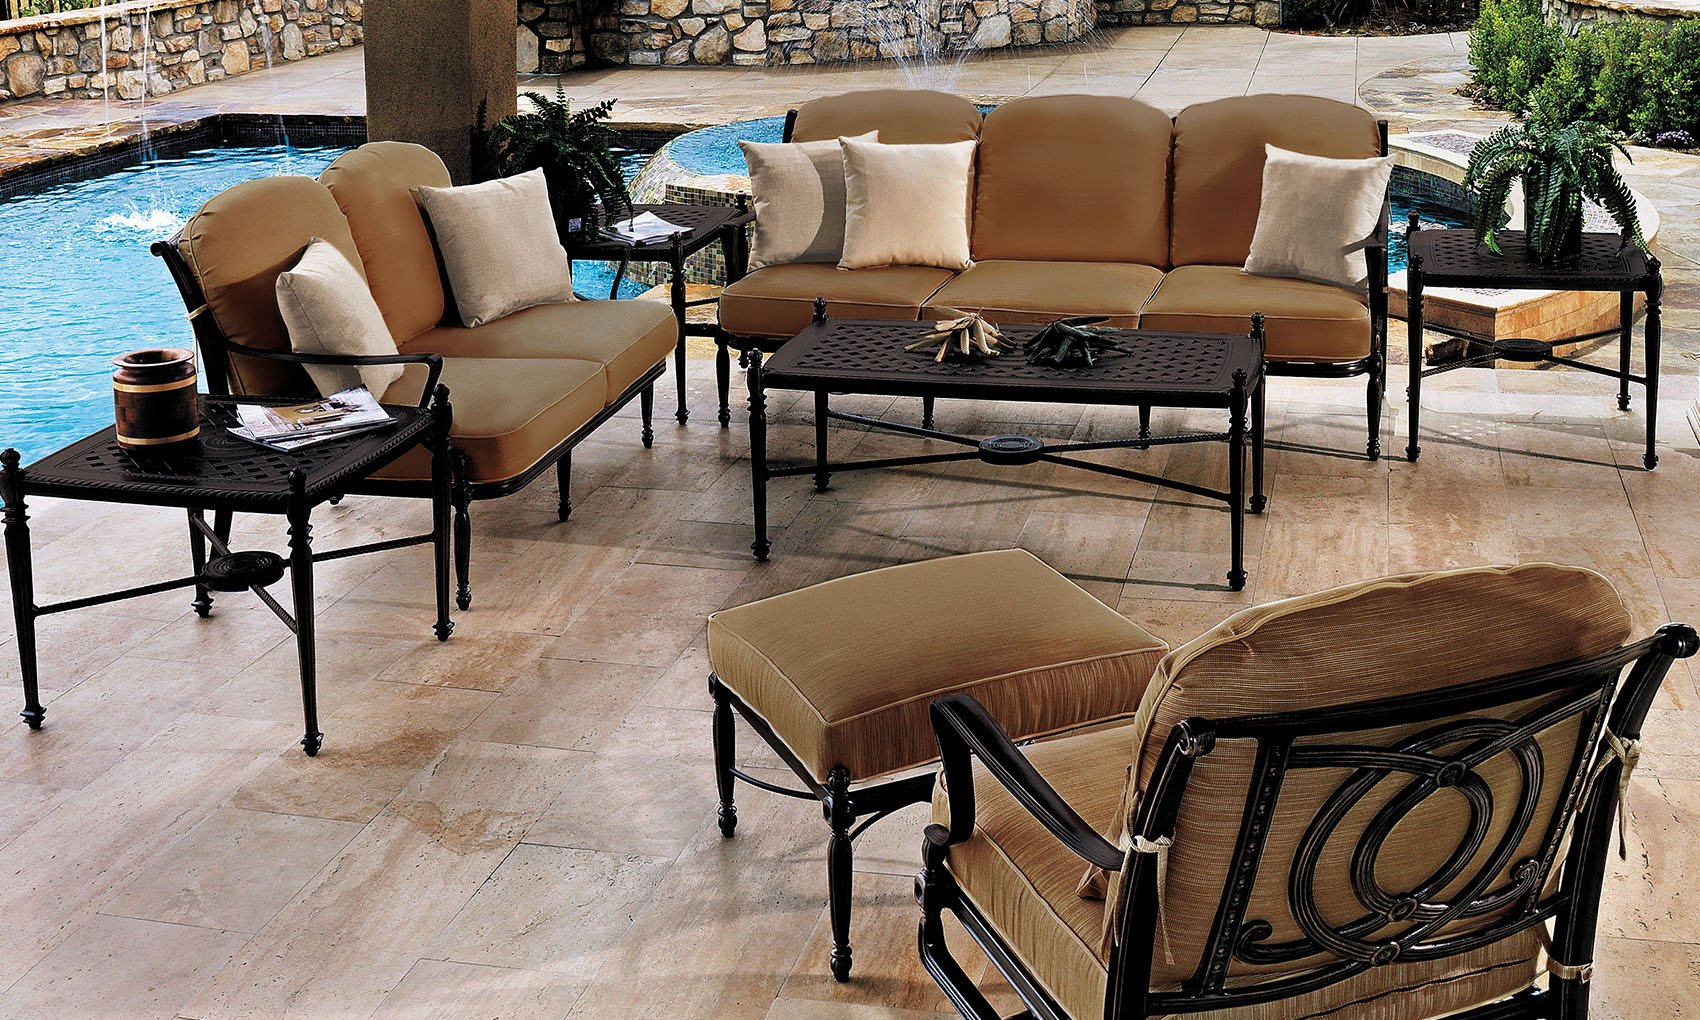 The Bel Air Collection By GenSun. Available At Richu0027s For The Home.